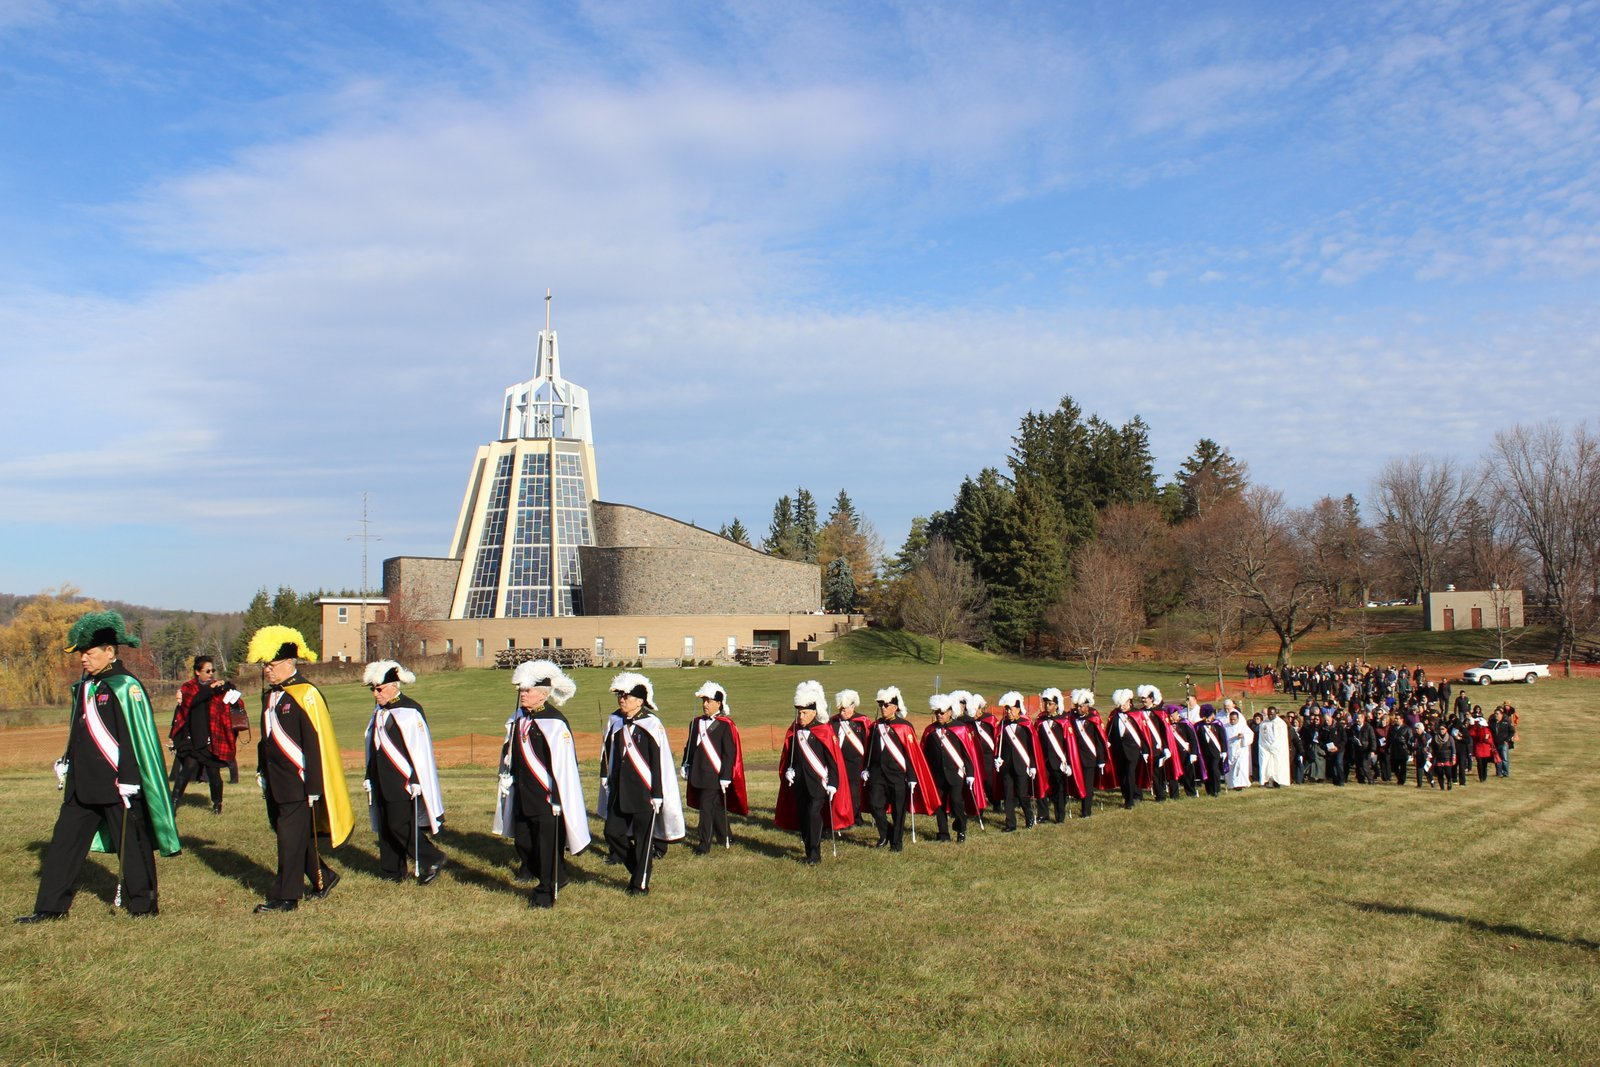 A solemn procession on the grounds of Marylake Monastery leads to the blessing of the Great Crucifix.